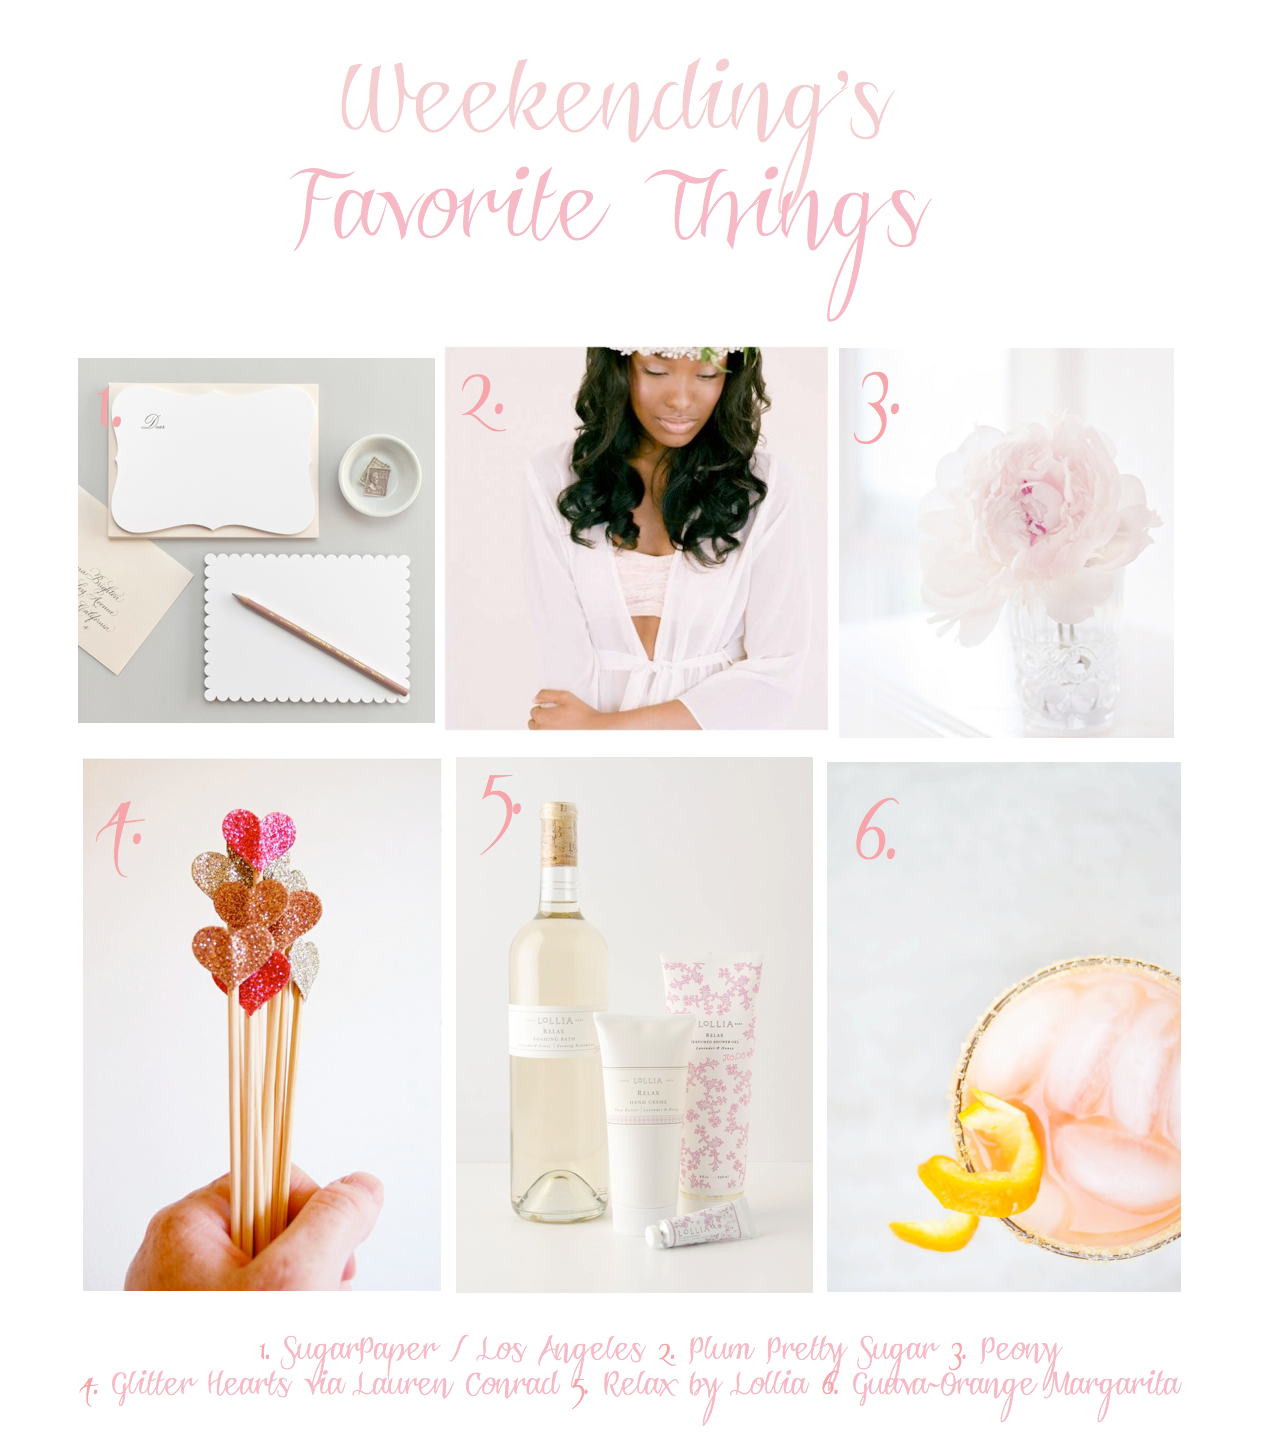 Favorite Things 1